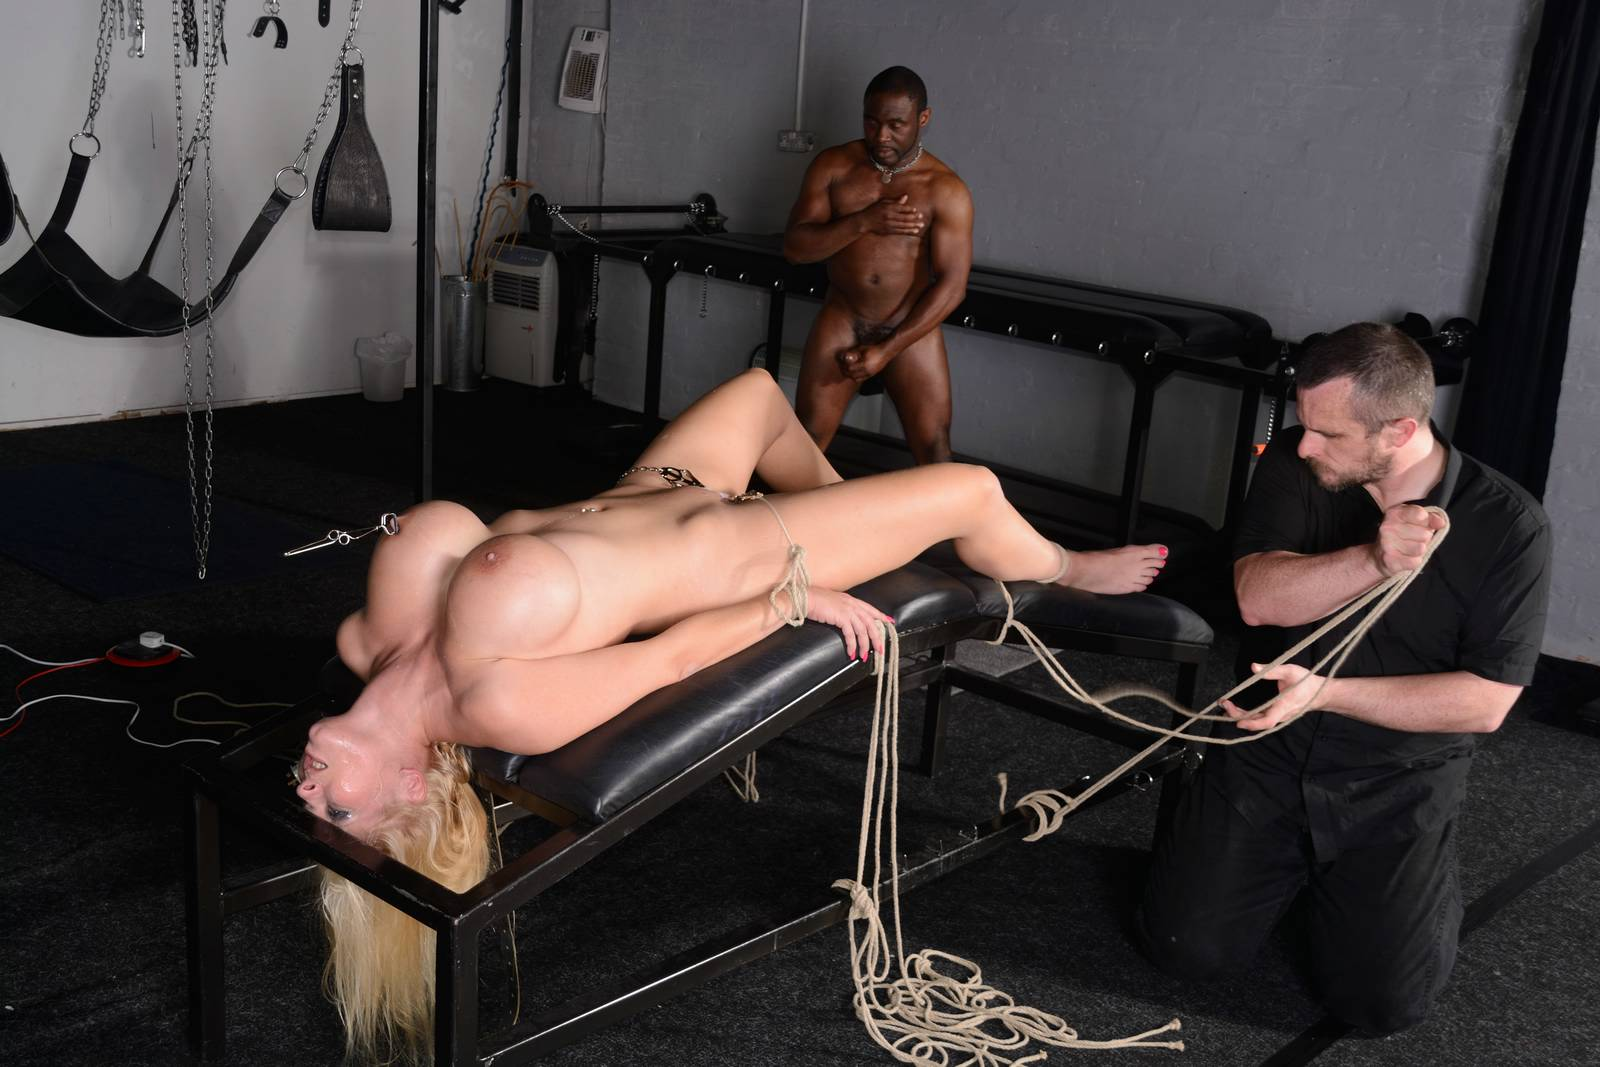 Bizarre bondage sex video